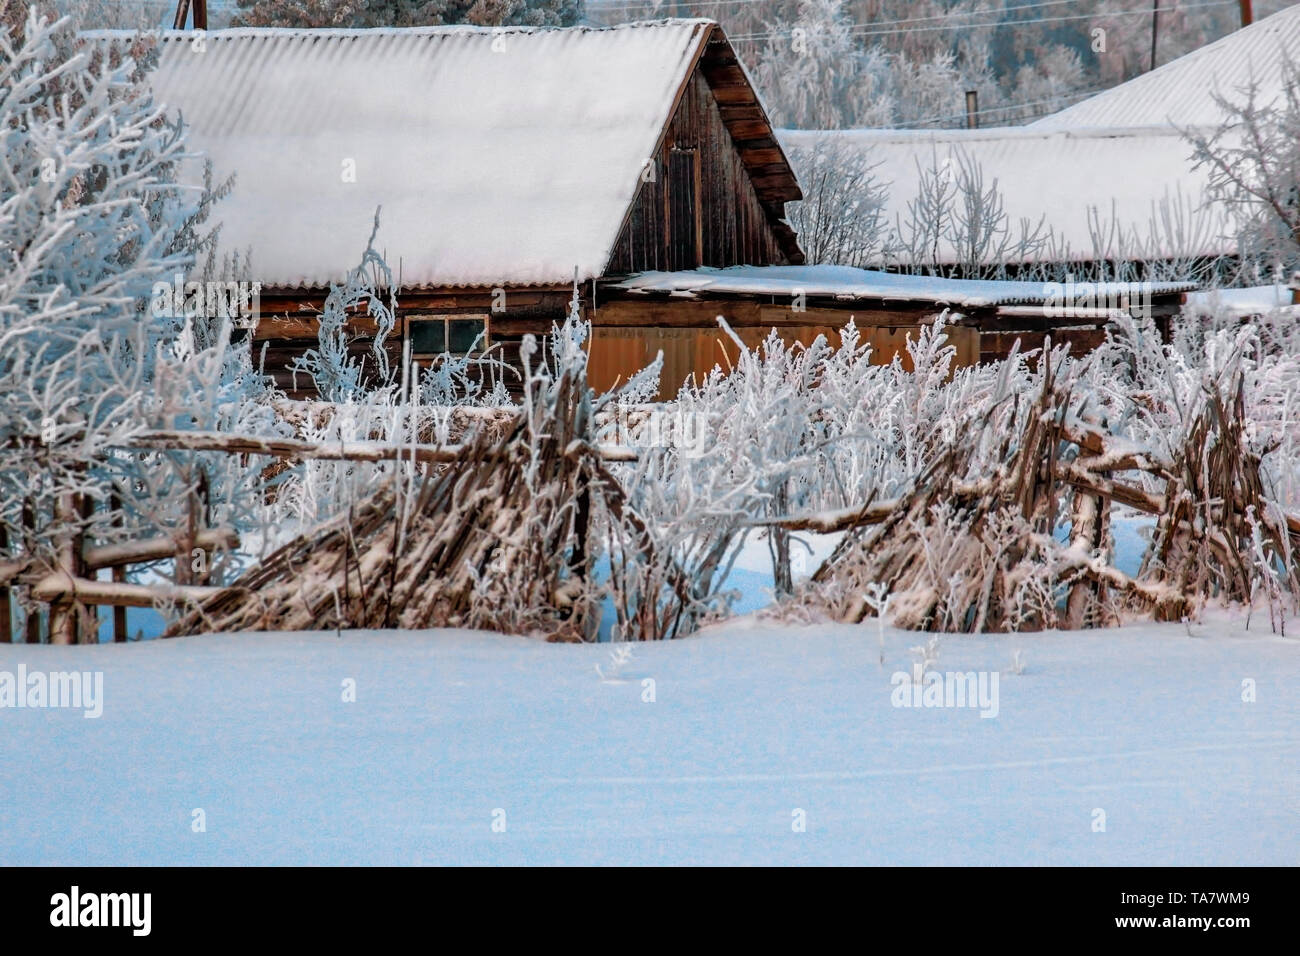 Winter landscape: an old wooden house with a decrepit and rickety fence. Snow-covered housing in a Russian village in Siberia - Stock Image